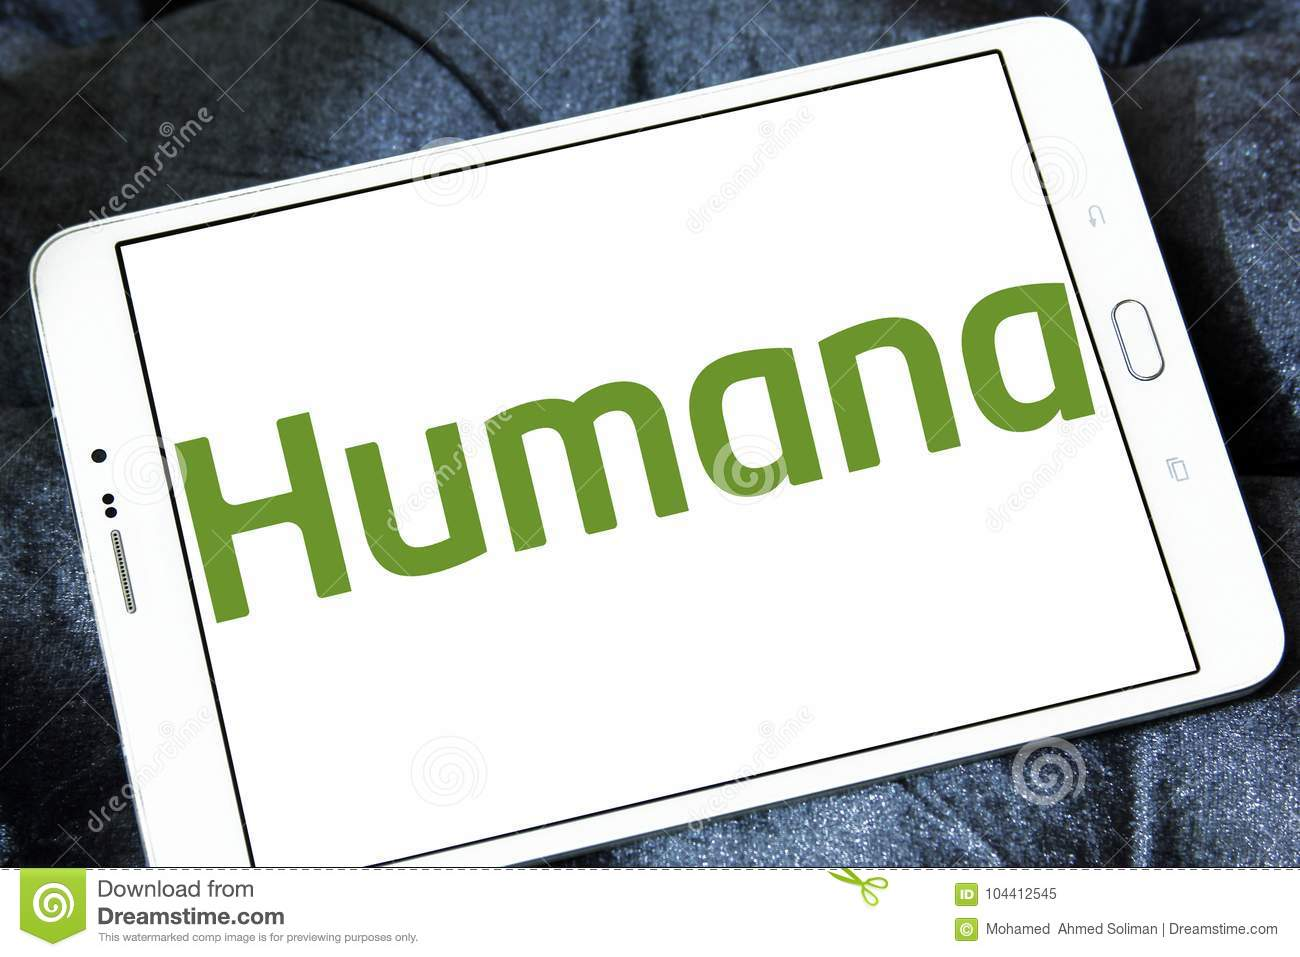 Humana Health Insurance >> Humana Health Insurance Company Logo Editorial Image Image Of